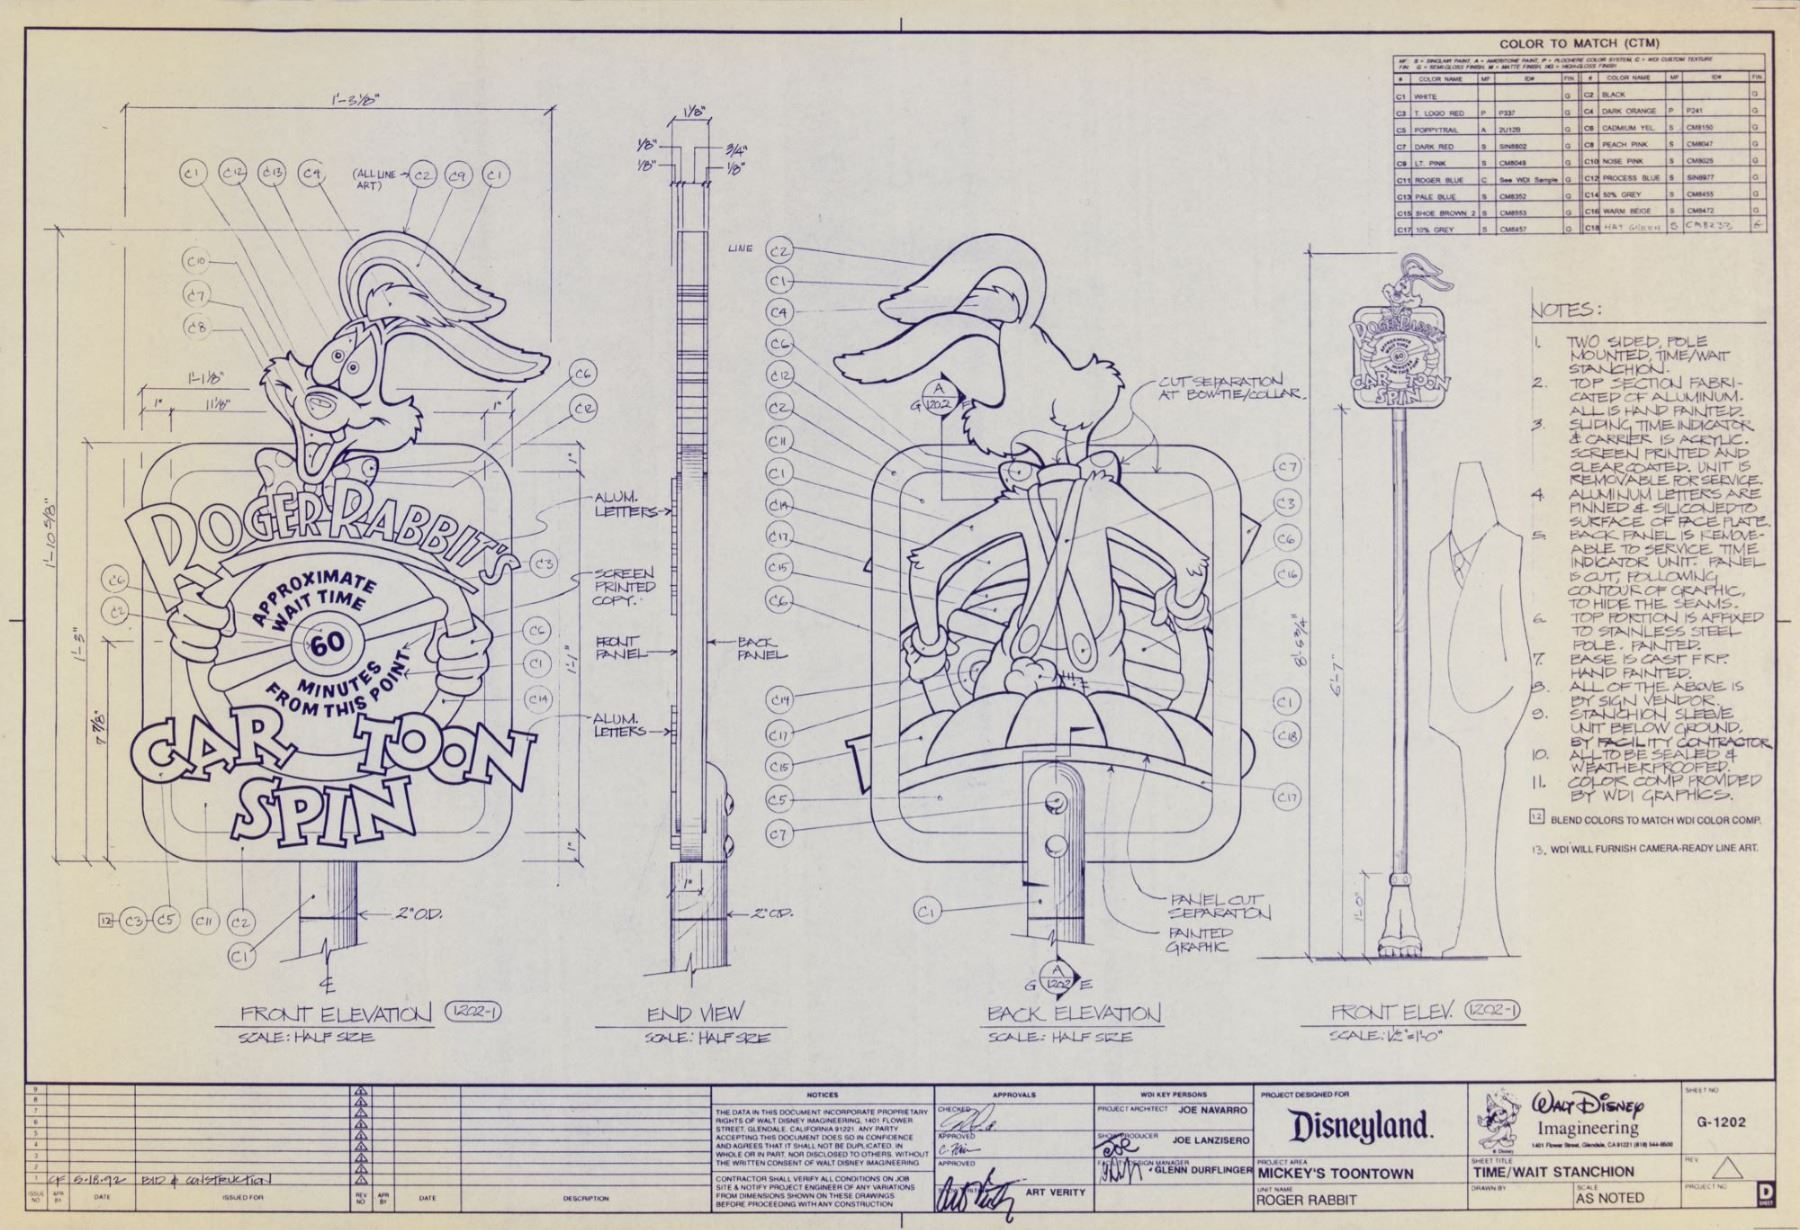 image 4 collection of 4 roger rabbit s car toon spin blueprints [ 1800 x 1230 Pixel ]